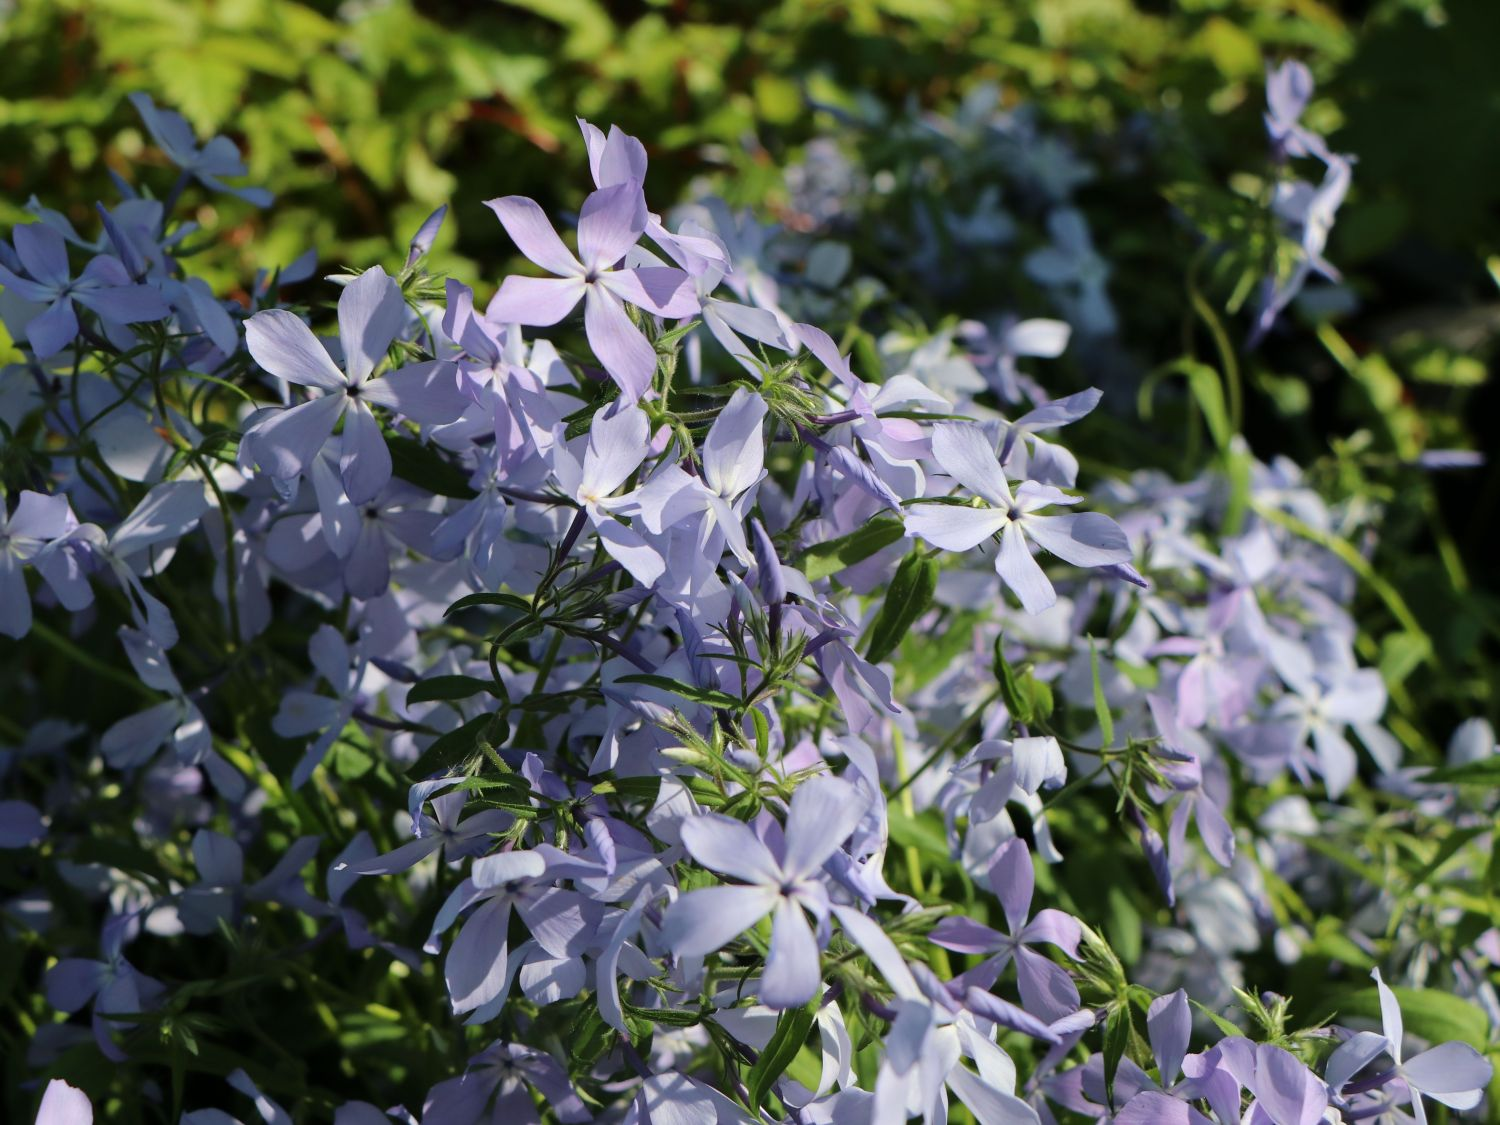 Wald Flammenblume Clouds Of Perfume Phlox Divaricata Clouds Of